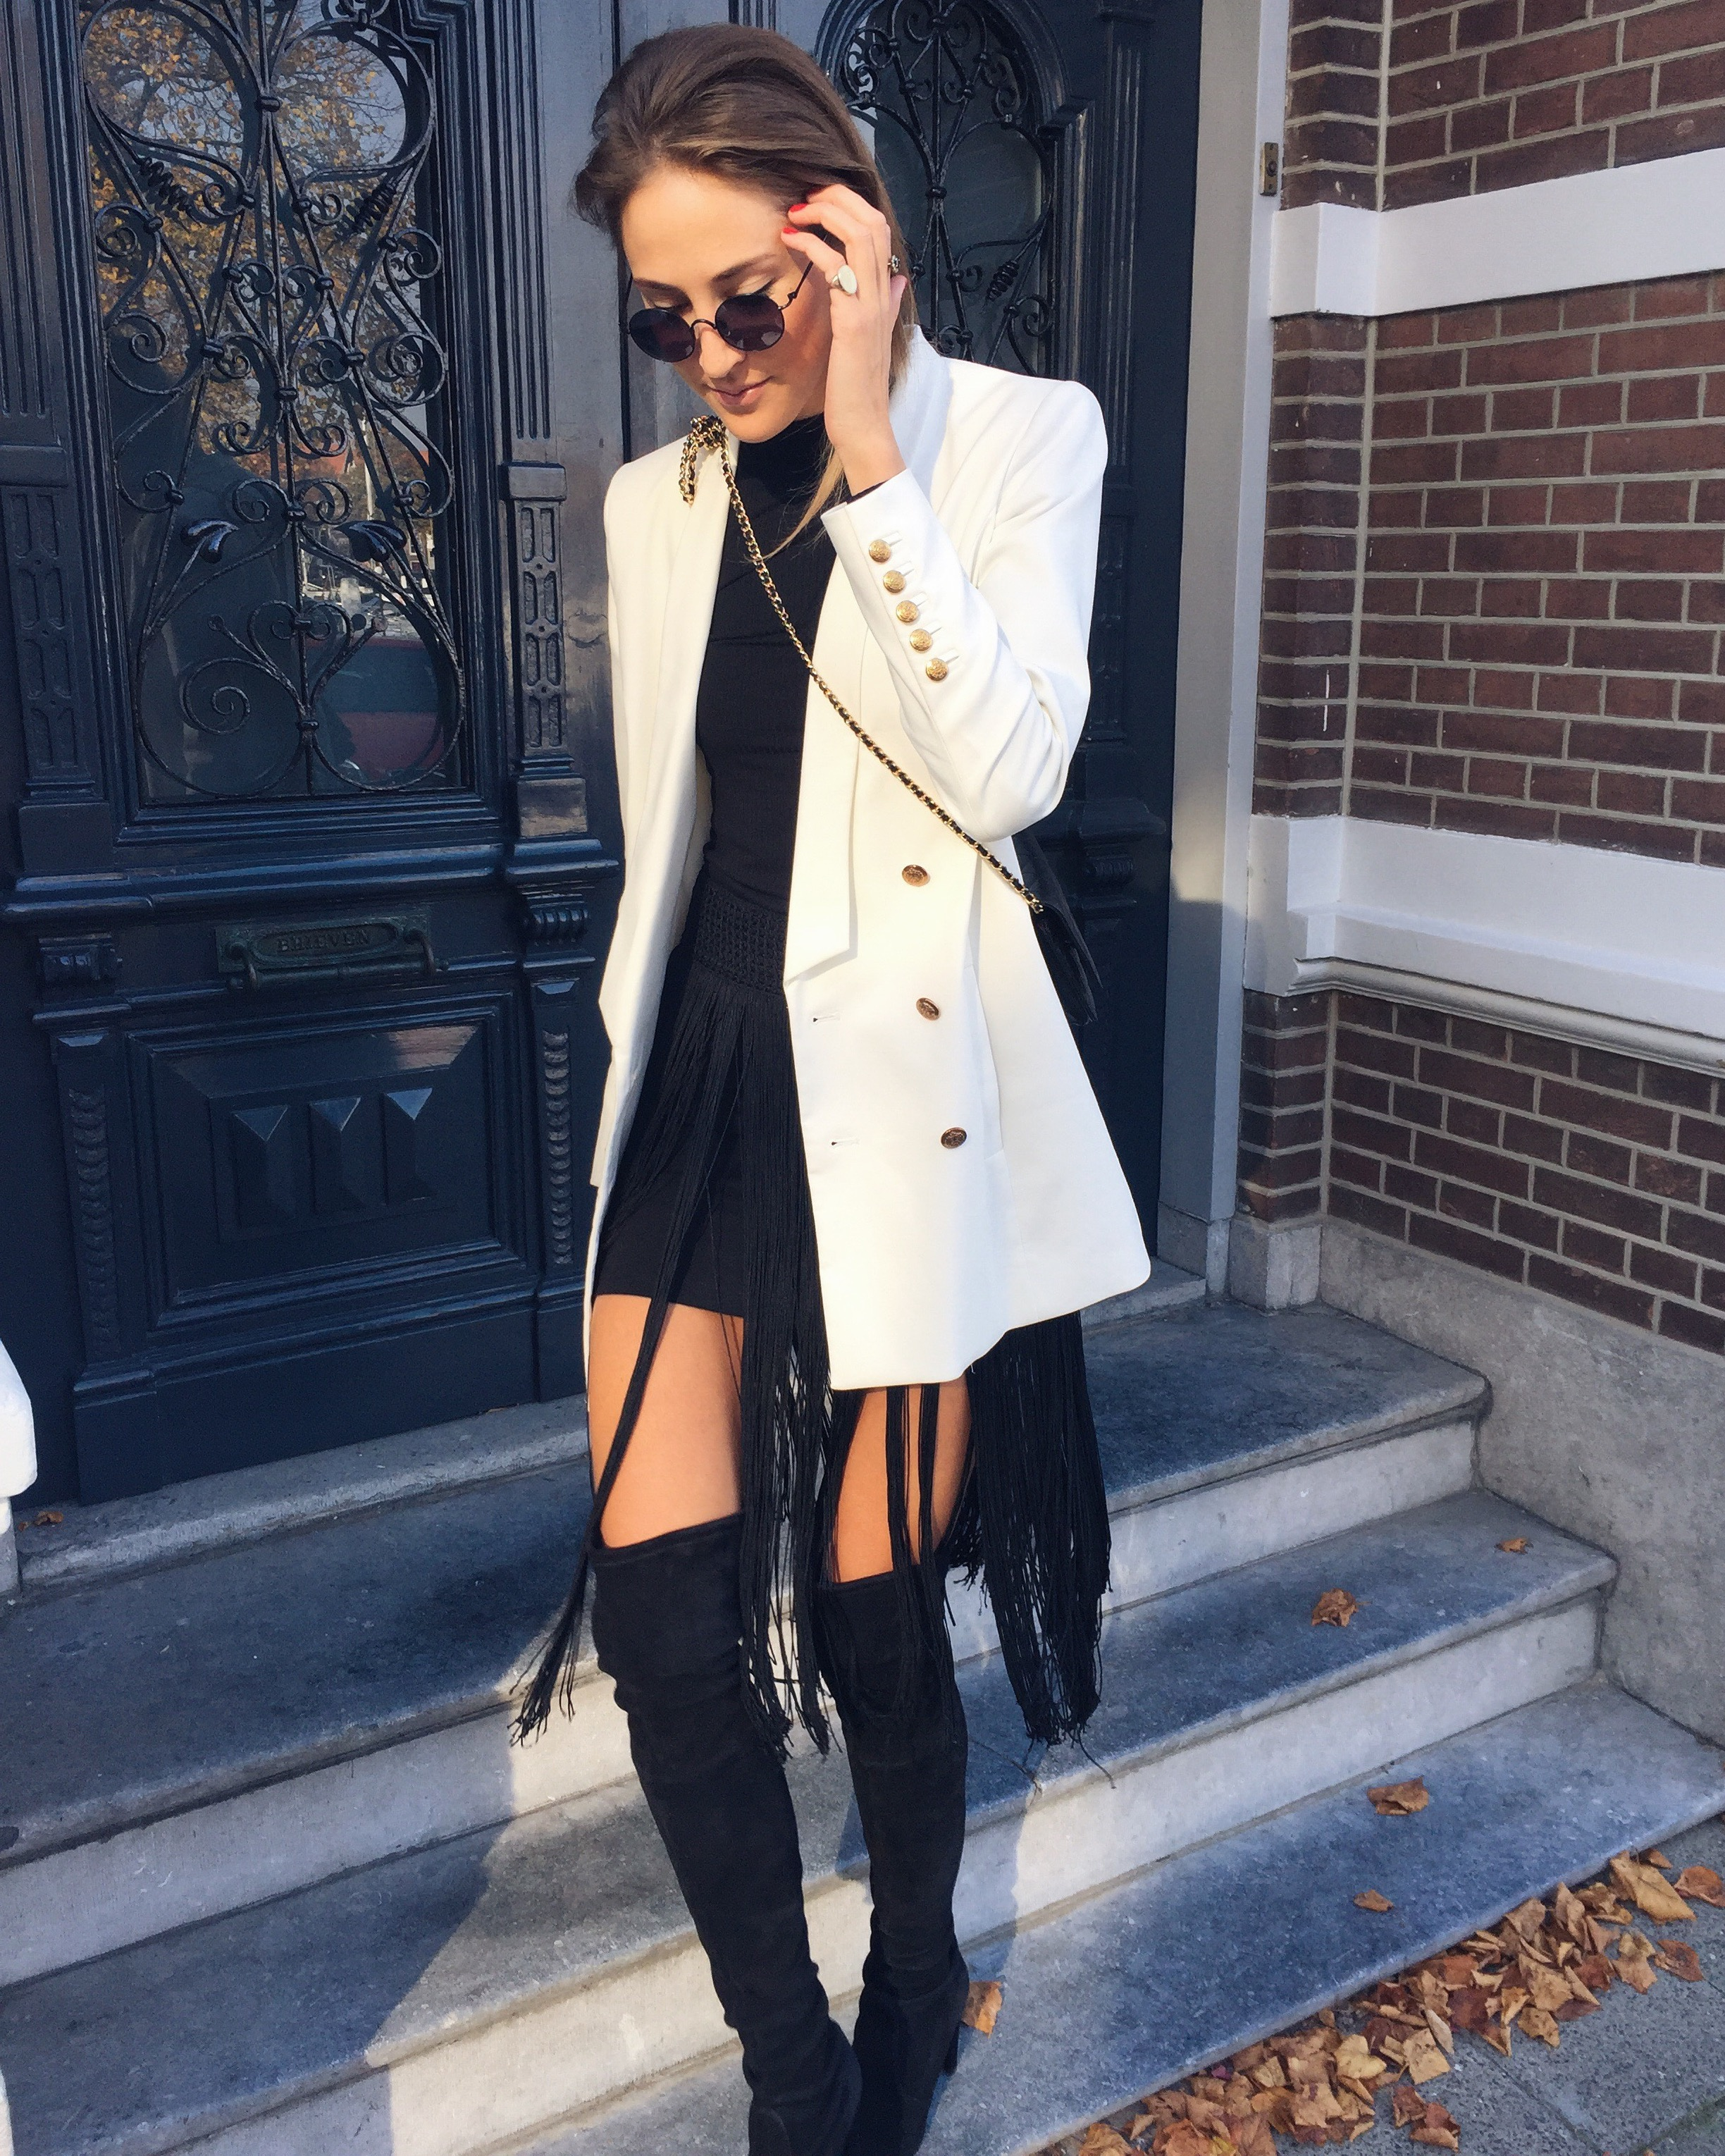 linda_tsetis_worlds_affair_sunday_ootd_style